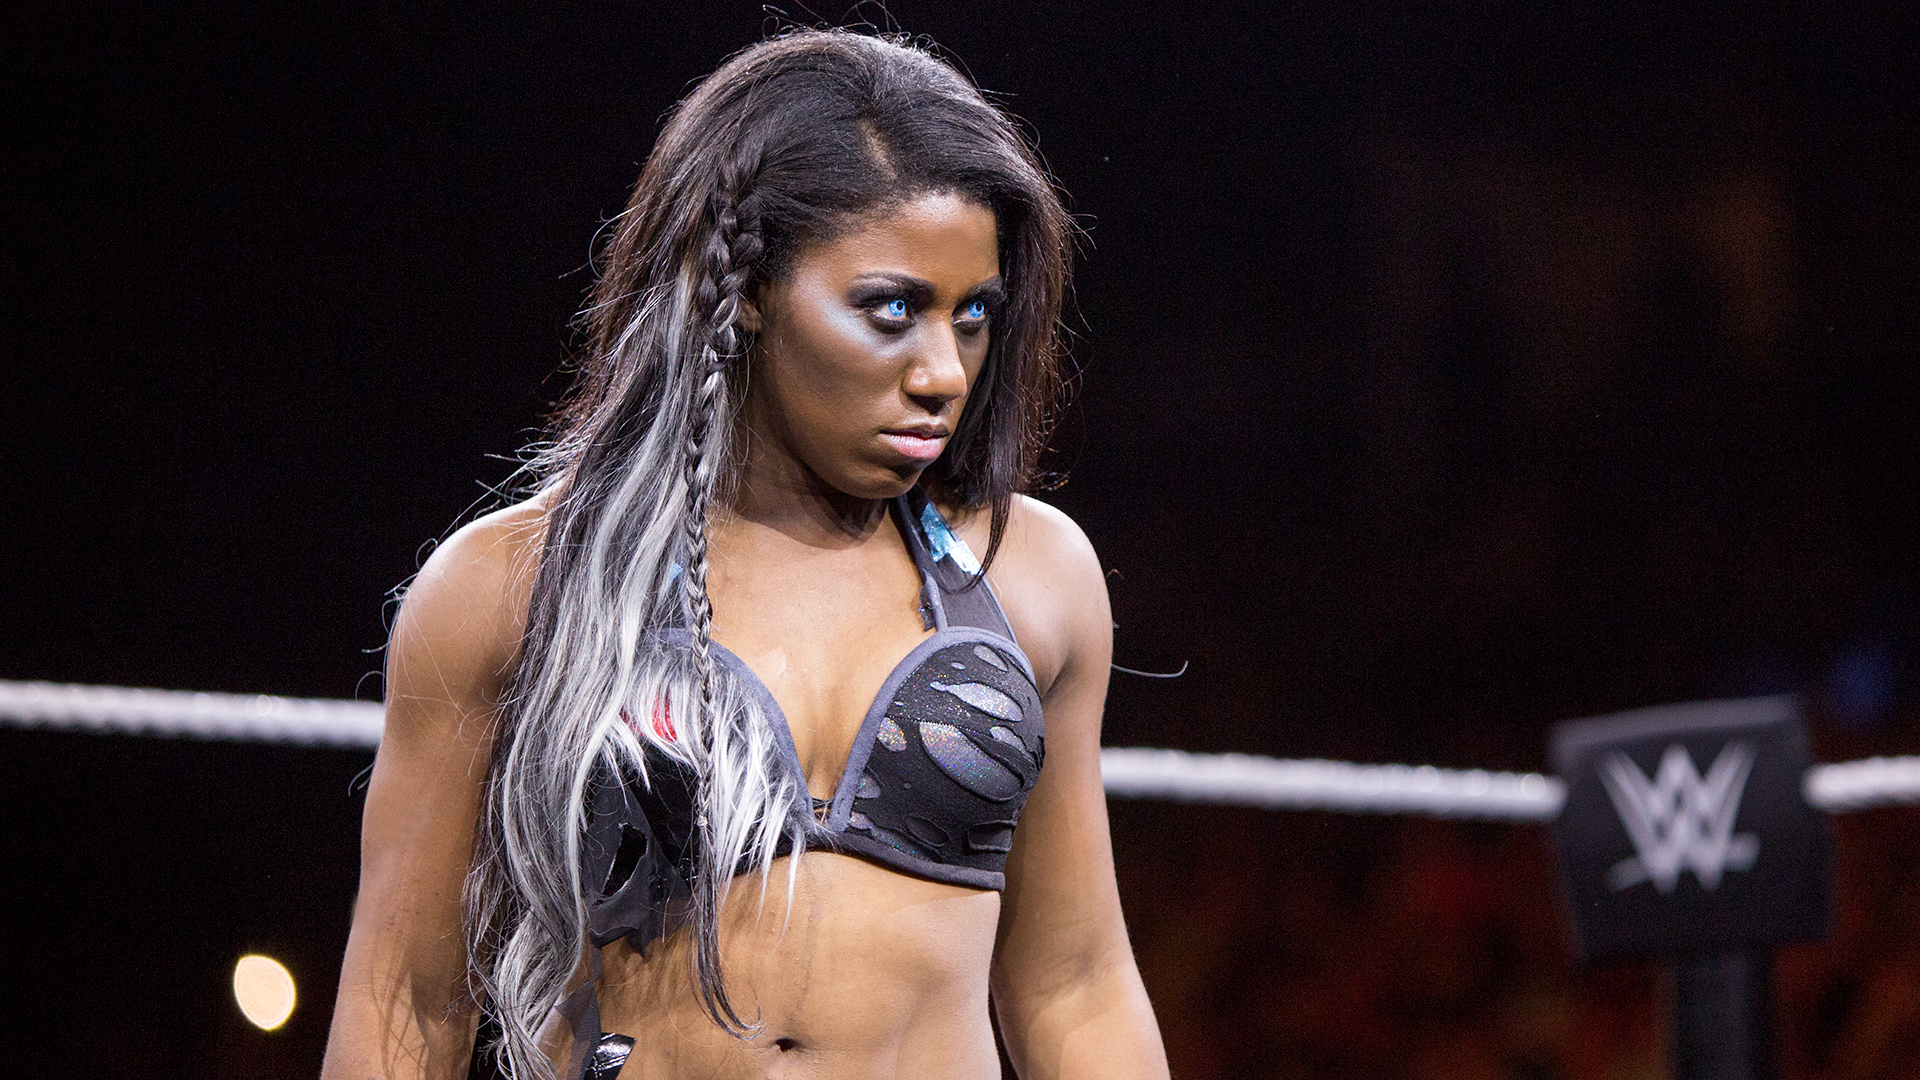 Exclusive Q&A: How Ember Moon went from humbled to home